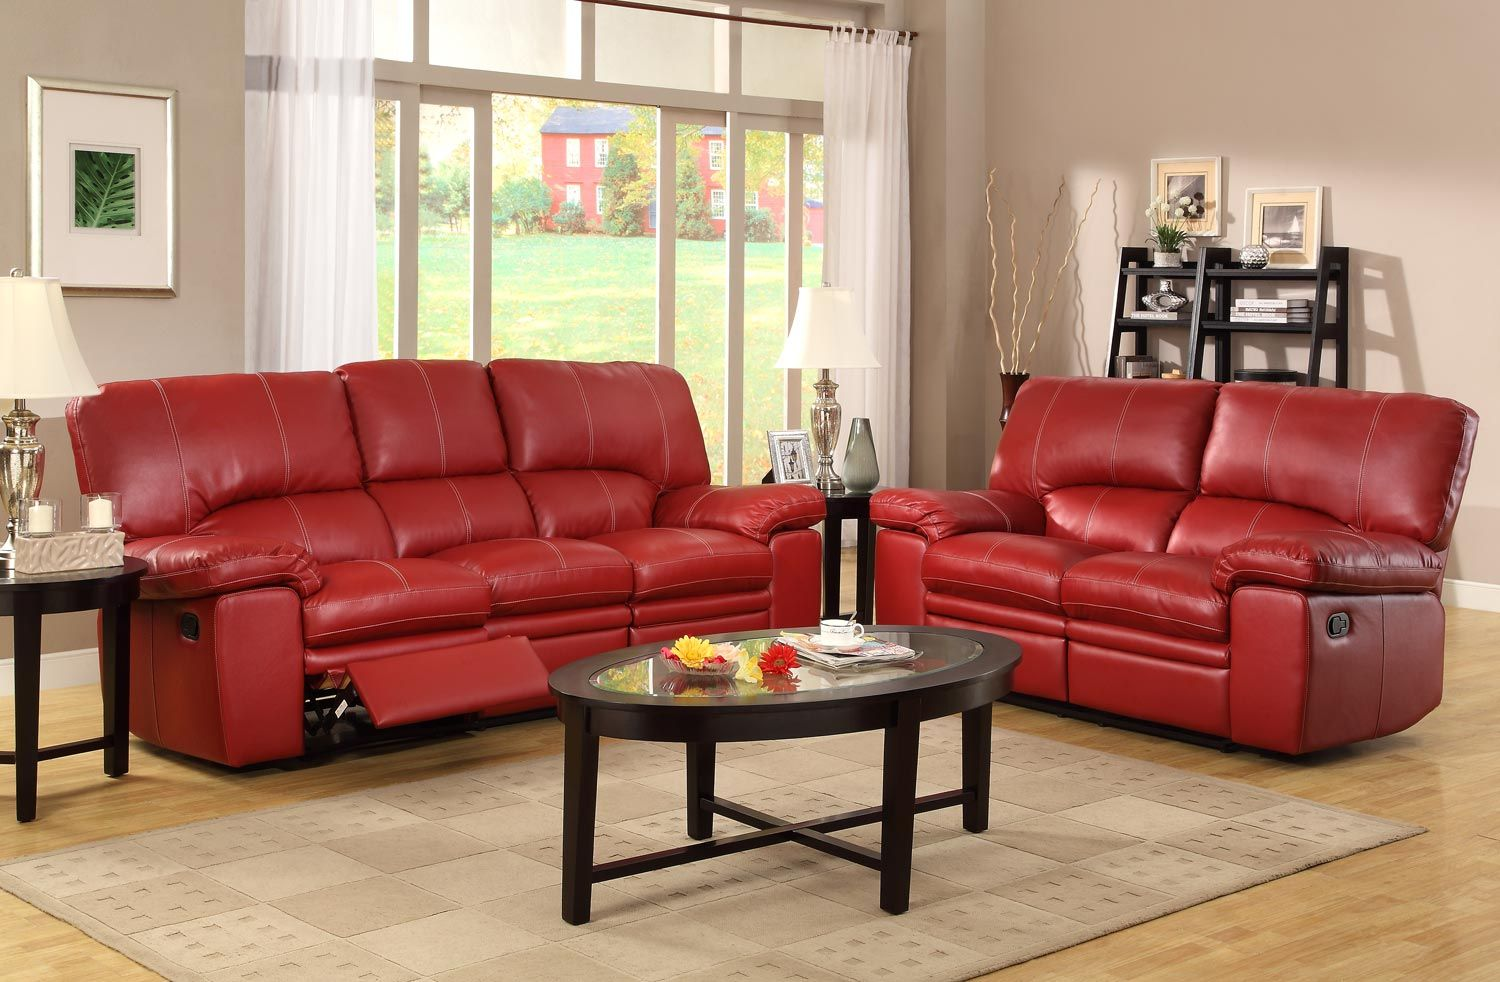 red leather living room furniture set center table pin by sofascouch on contemporary sofa awesome genuine gorgeous 22 for sofas and couches